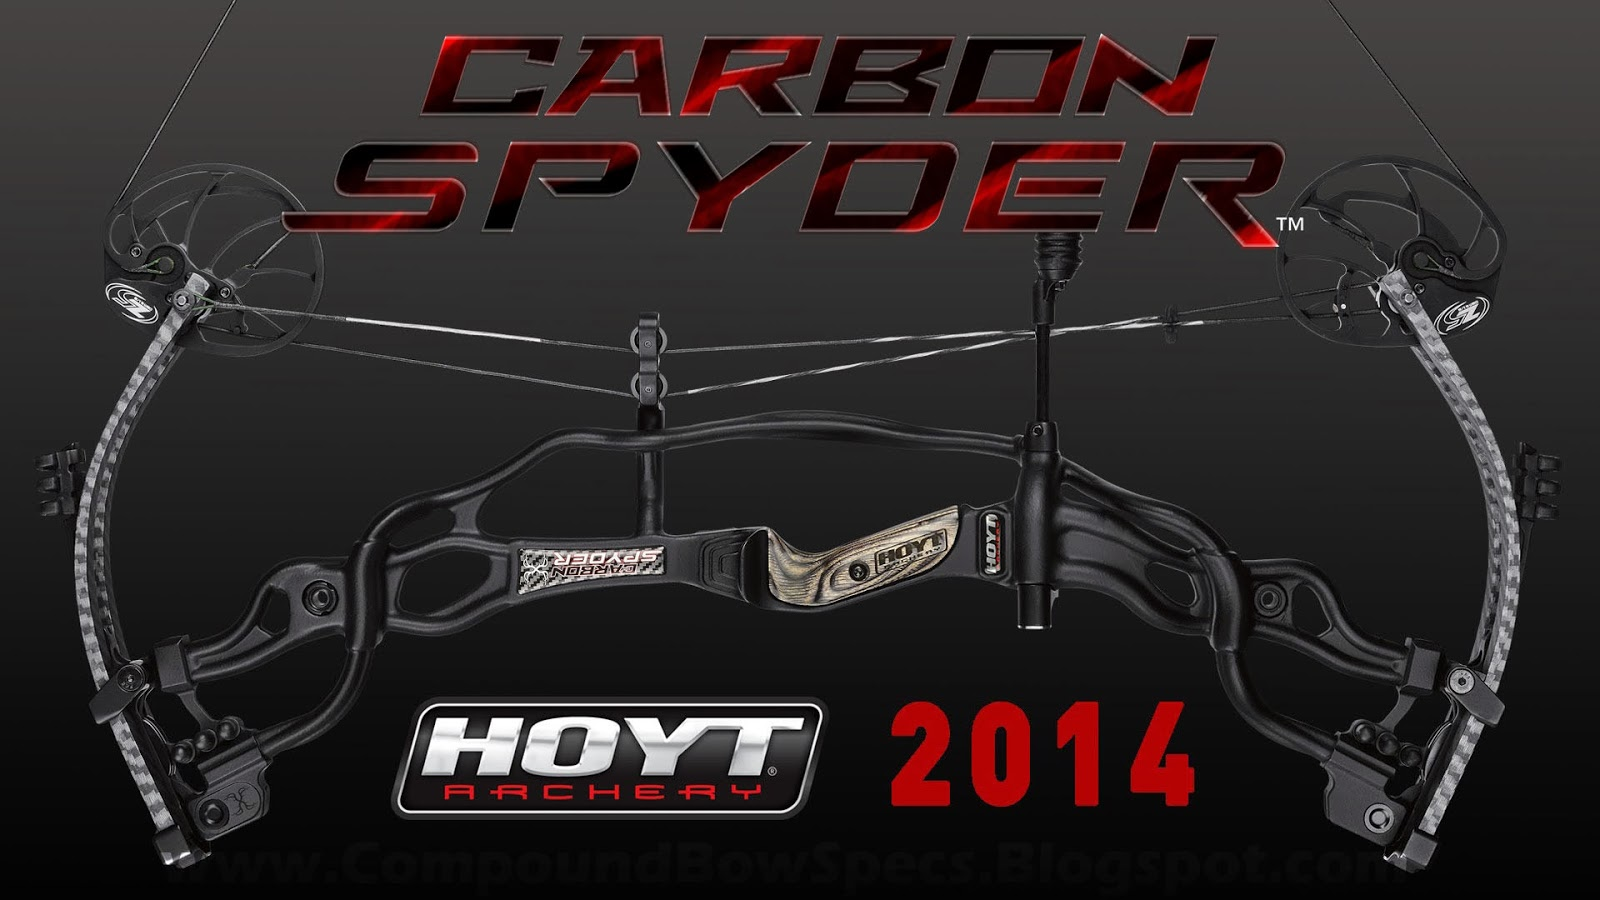 Hoyt Carbon Spyder 30 Black Edition Compound Bow Specs 332fps